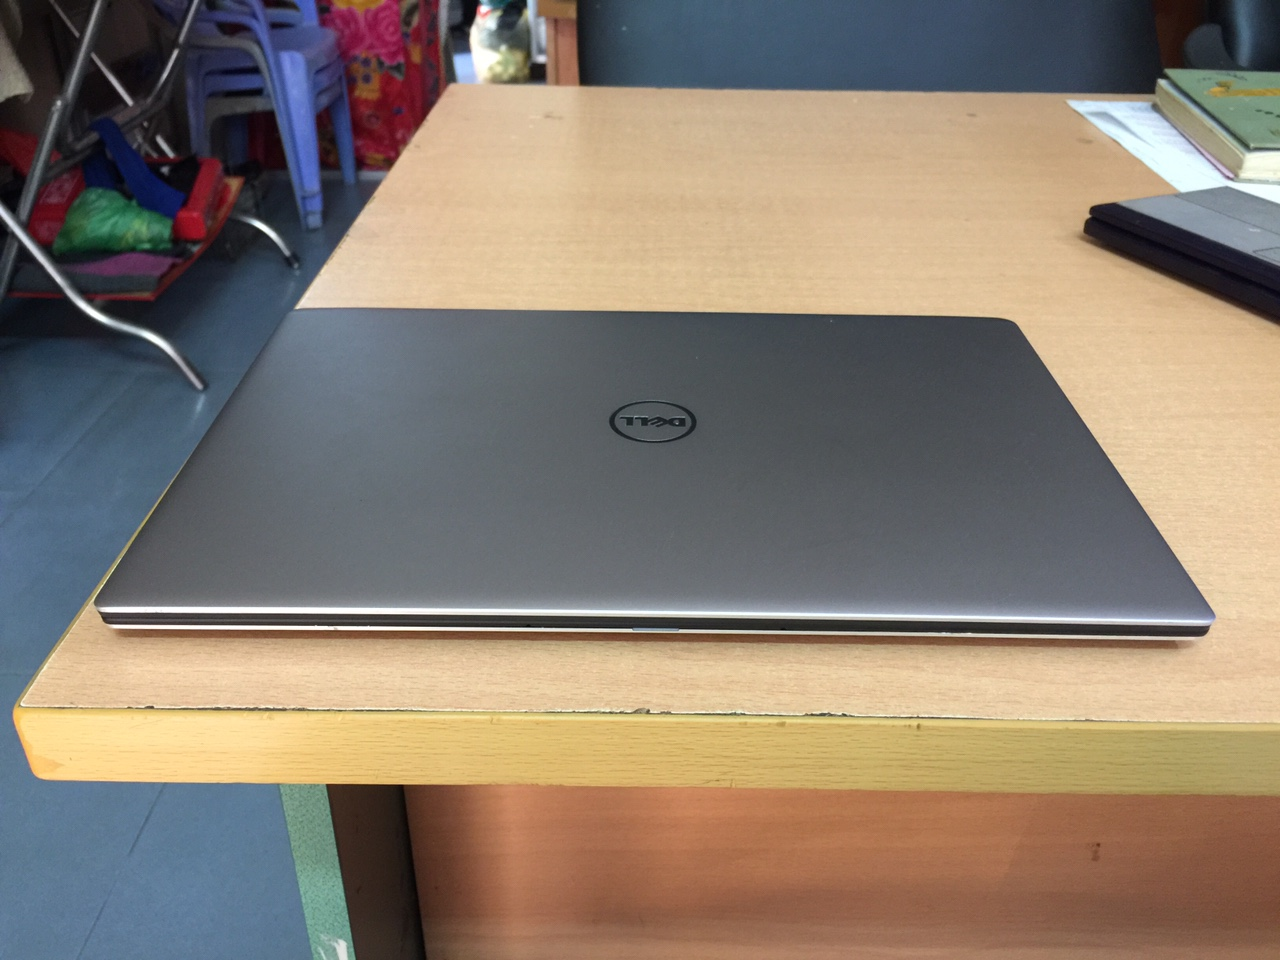 DELL XPS 13 9360 I7 7600U 8GB 256GB 13.3 FHD TOUCH